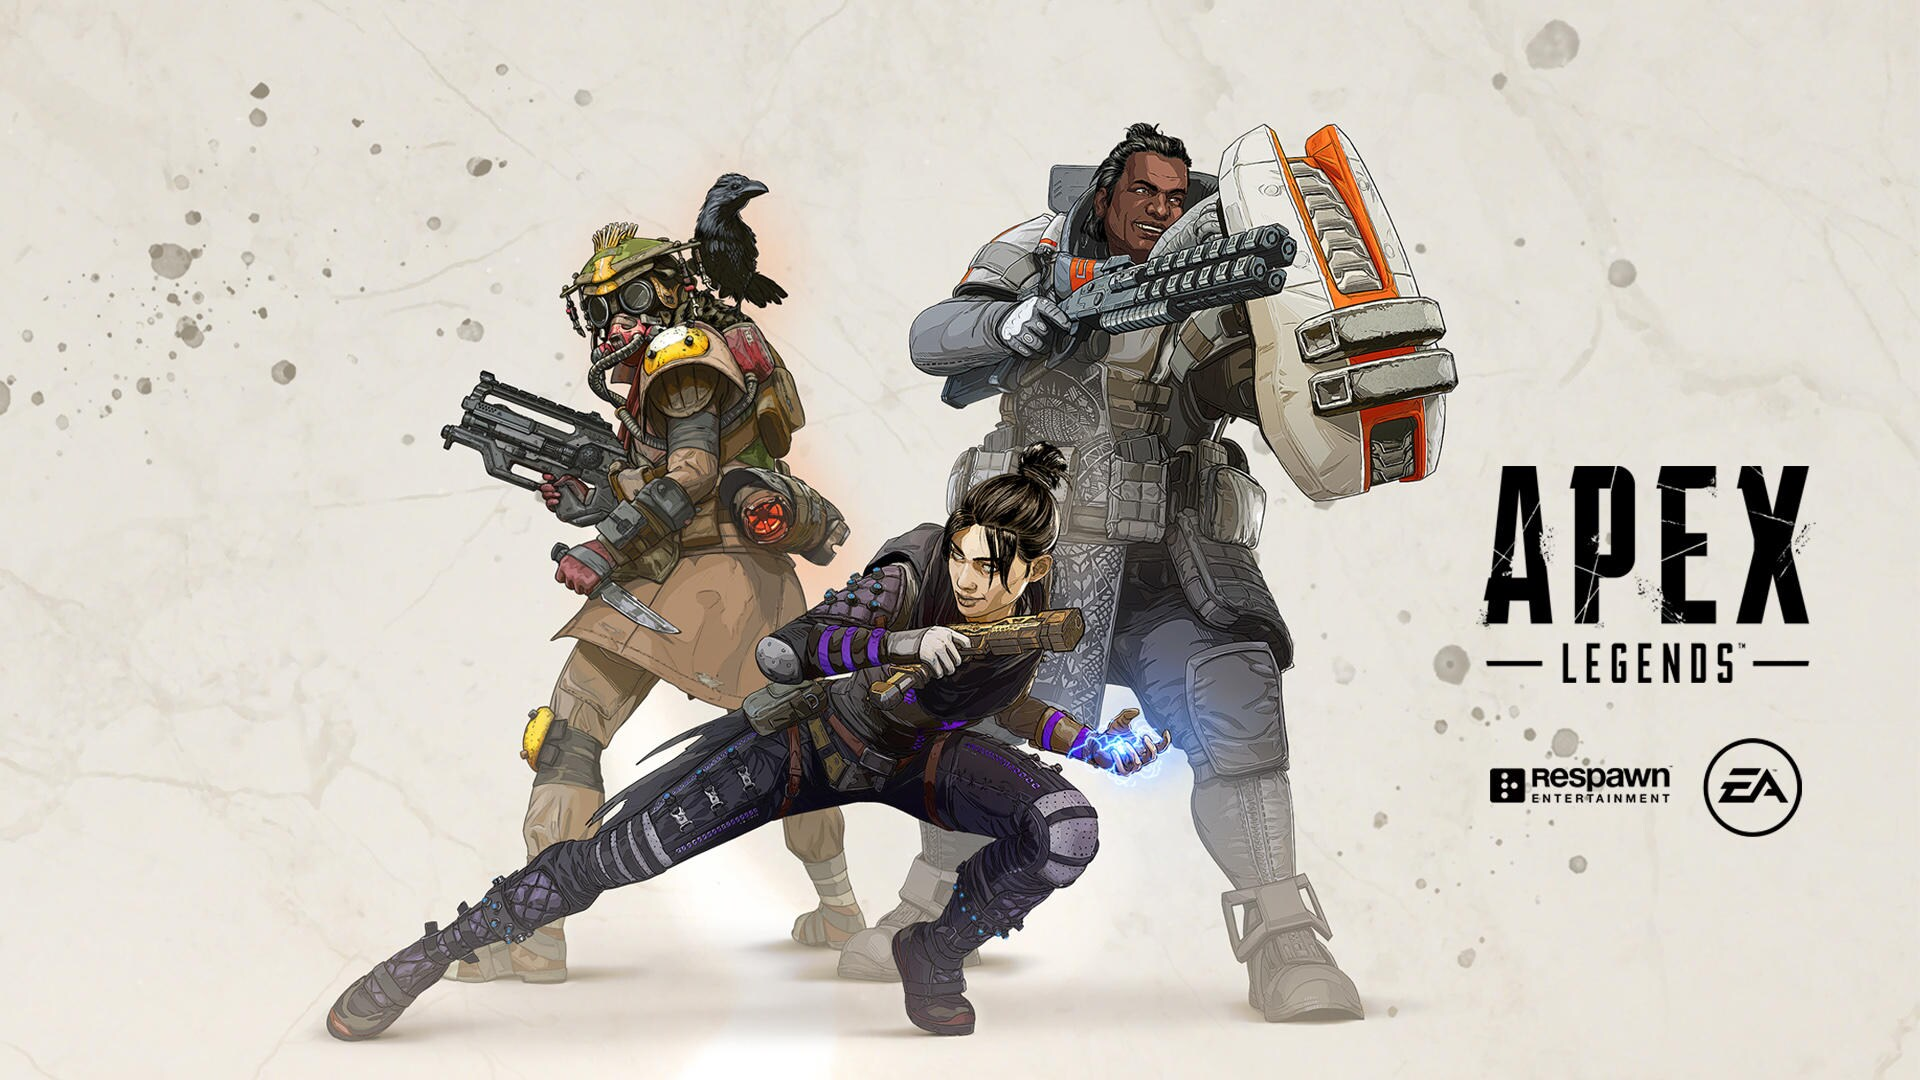 Three Apex legends heroes posing on a beige background with the text Apex Legends.